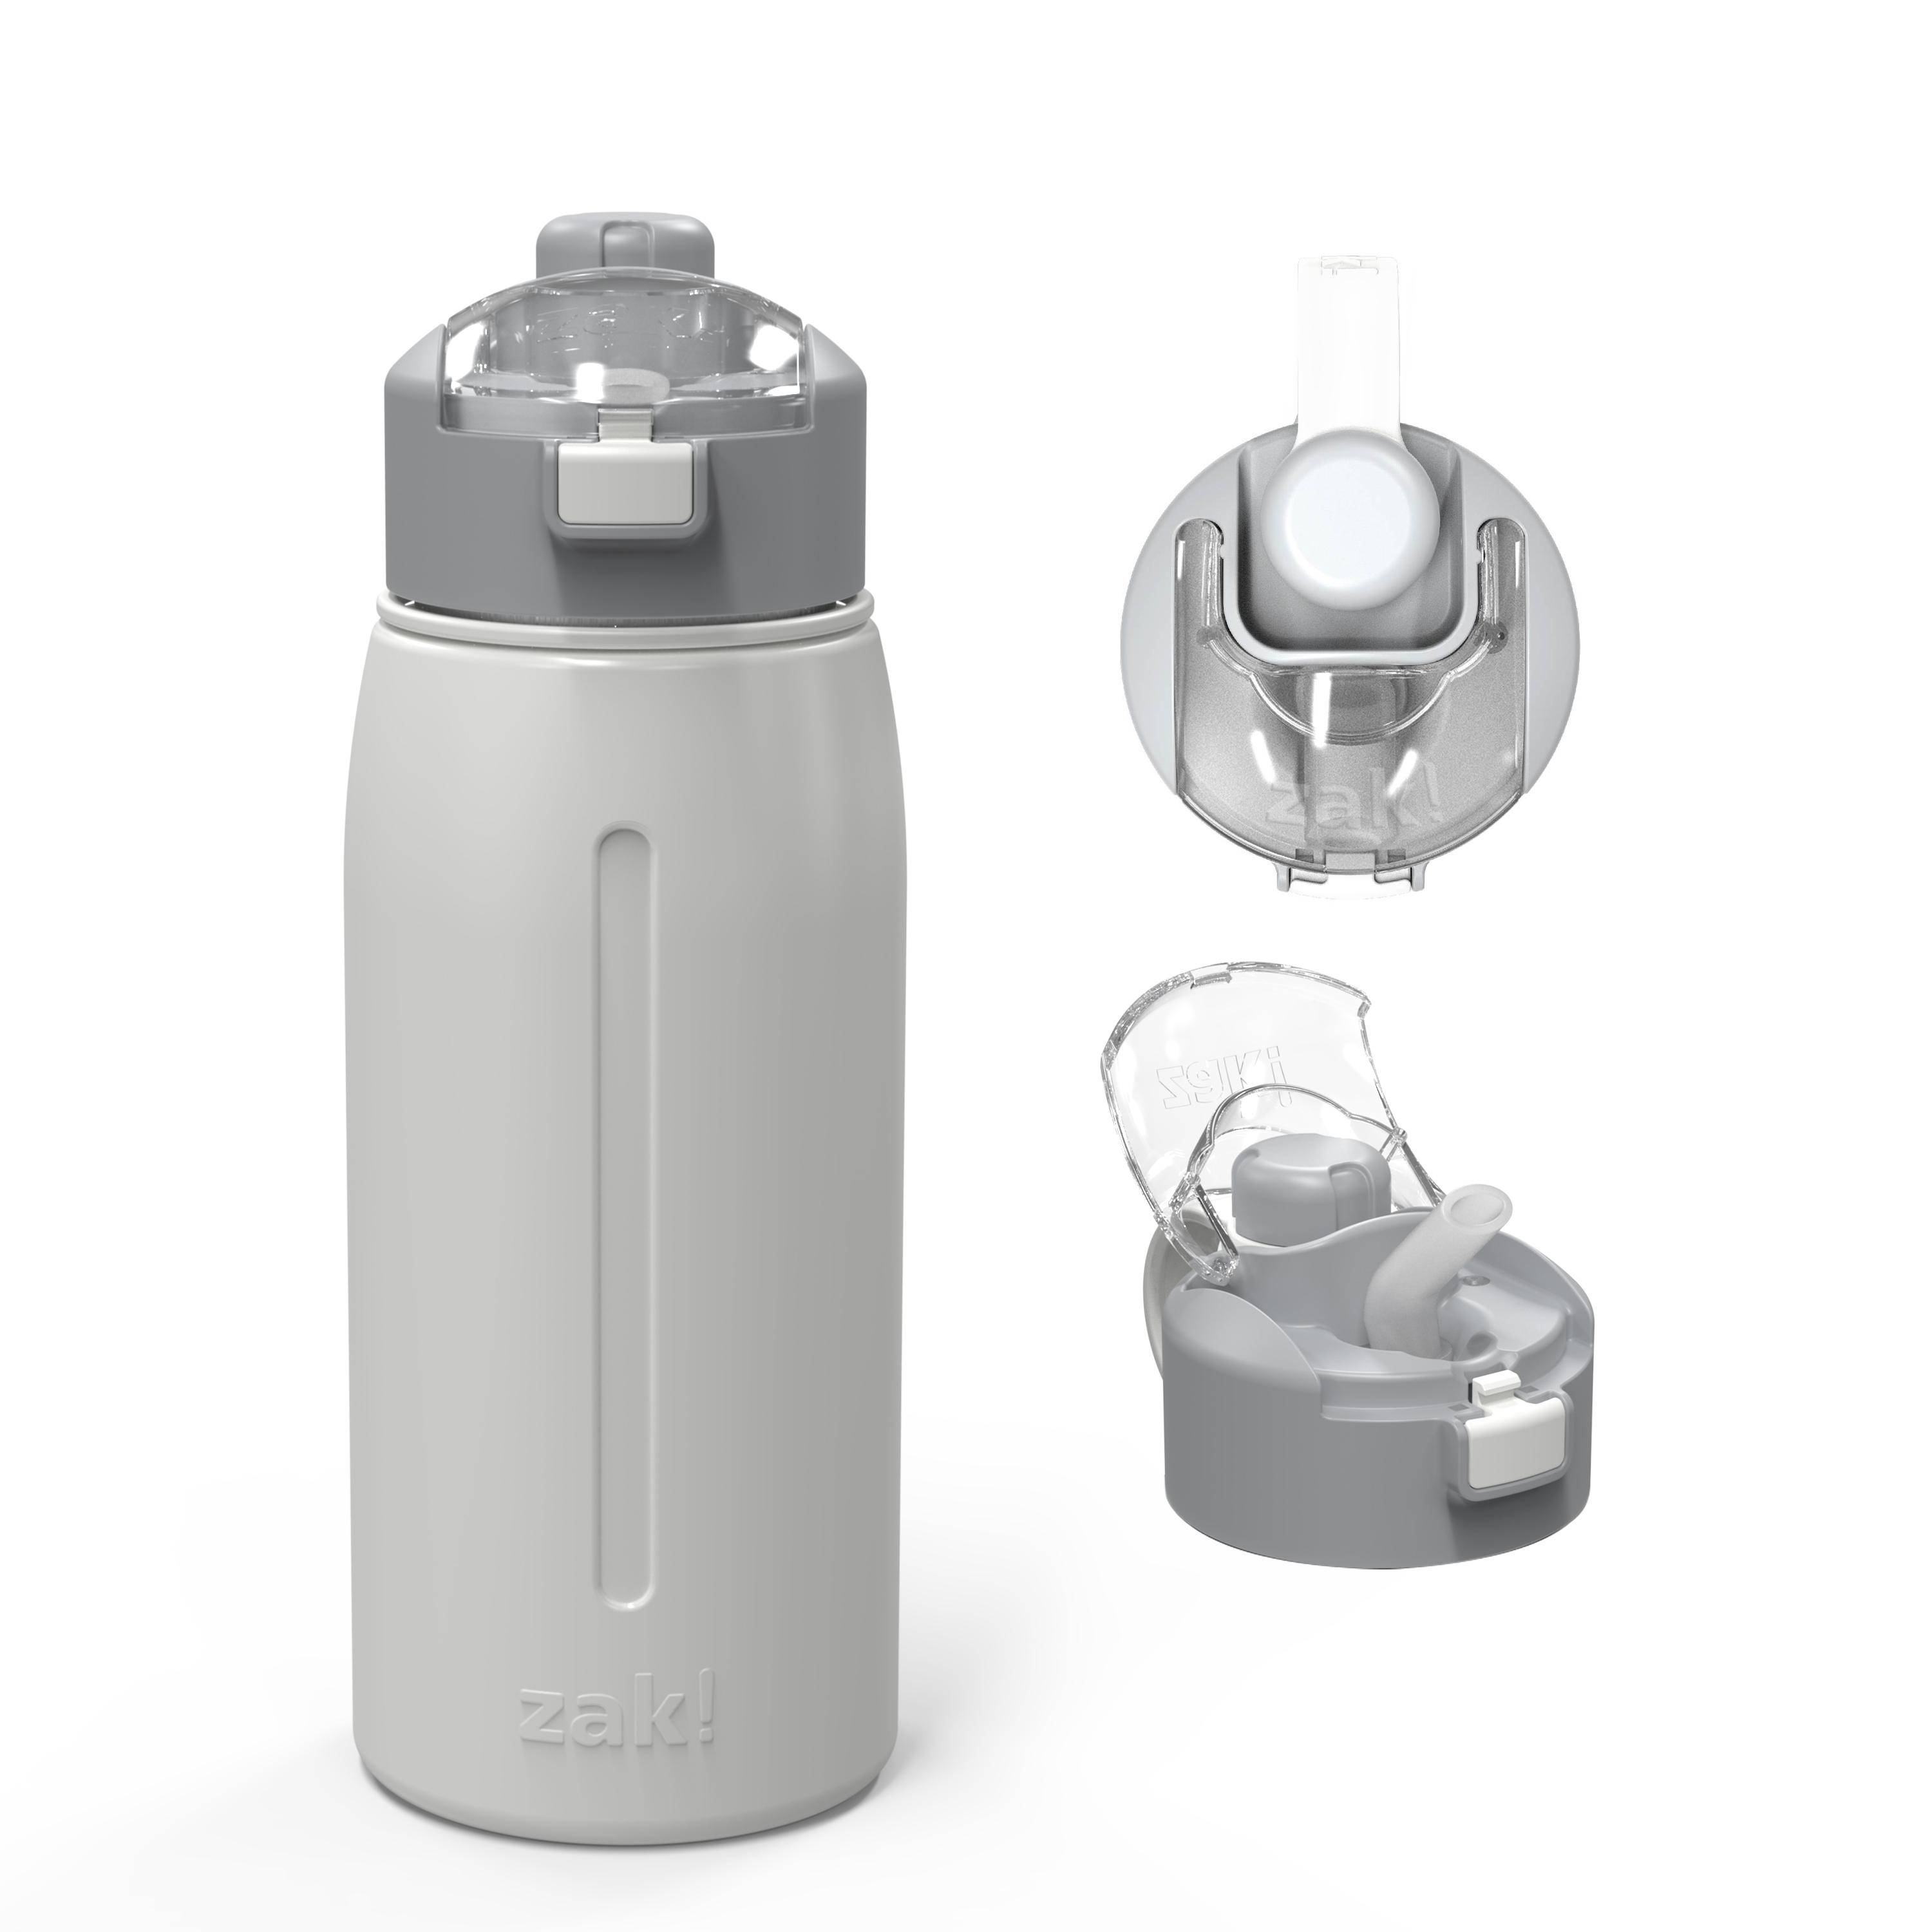 Genesis 24 ounce Vacuum Insulated Stainless Steel Tumbler, Gray slideshow image 1